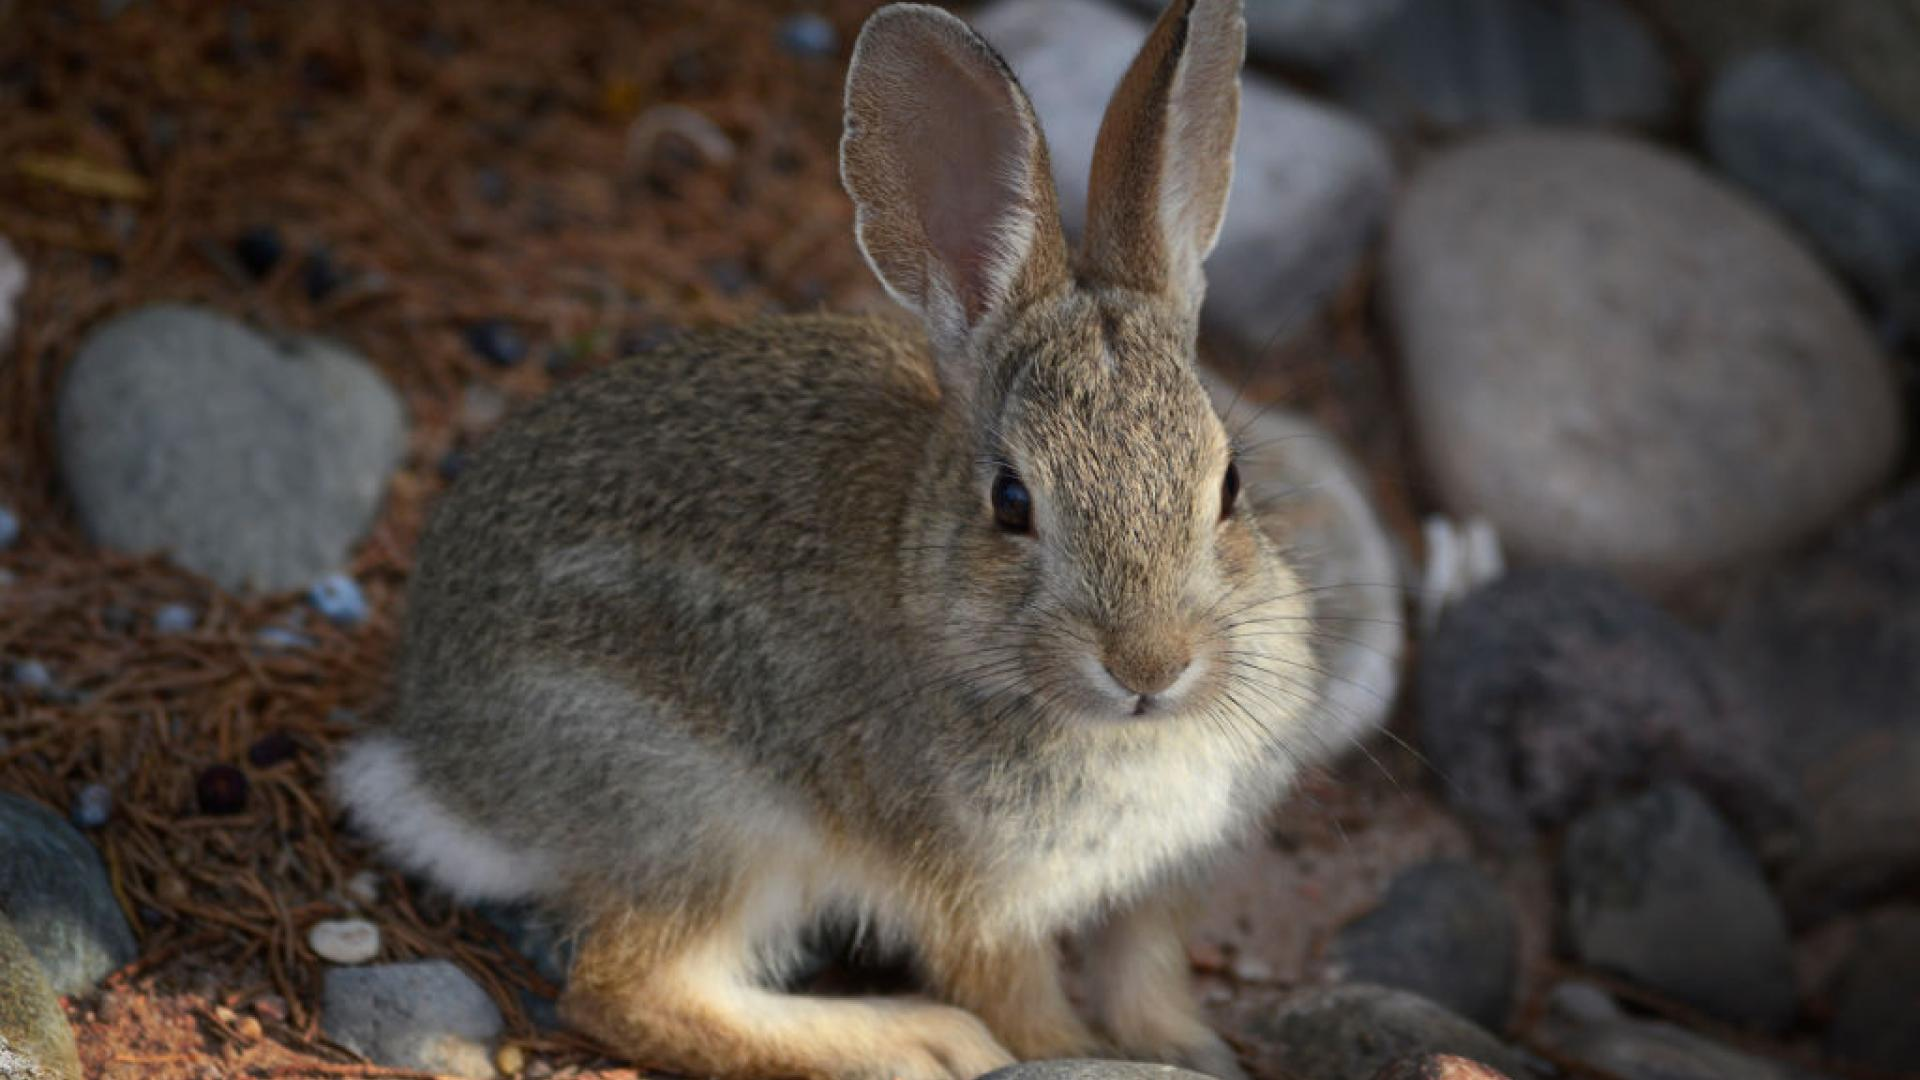 A young Desert Cottontail rabbit searches for food near Santa Fe, New Mexico.